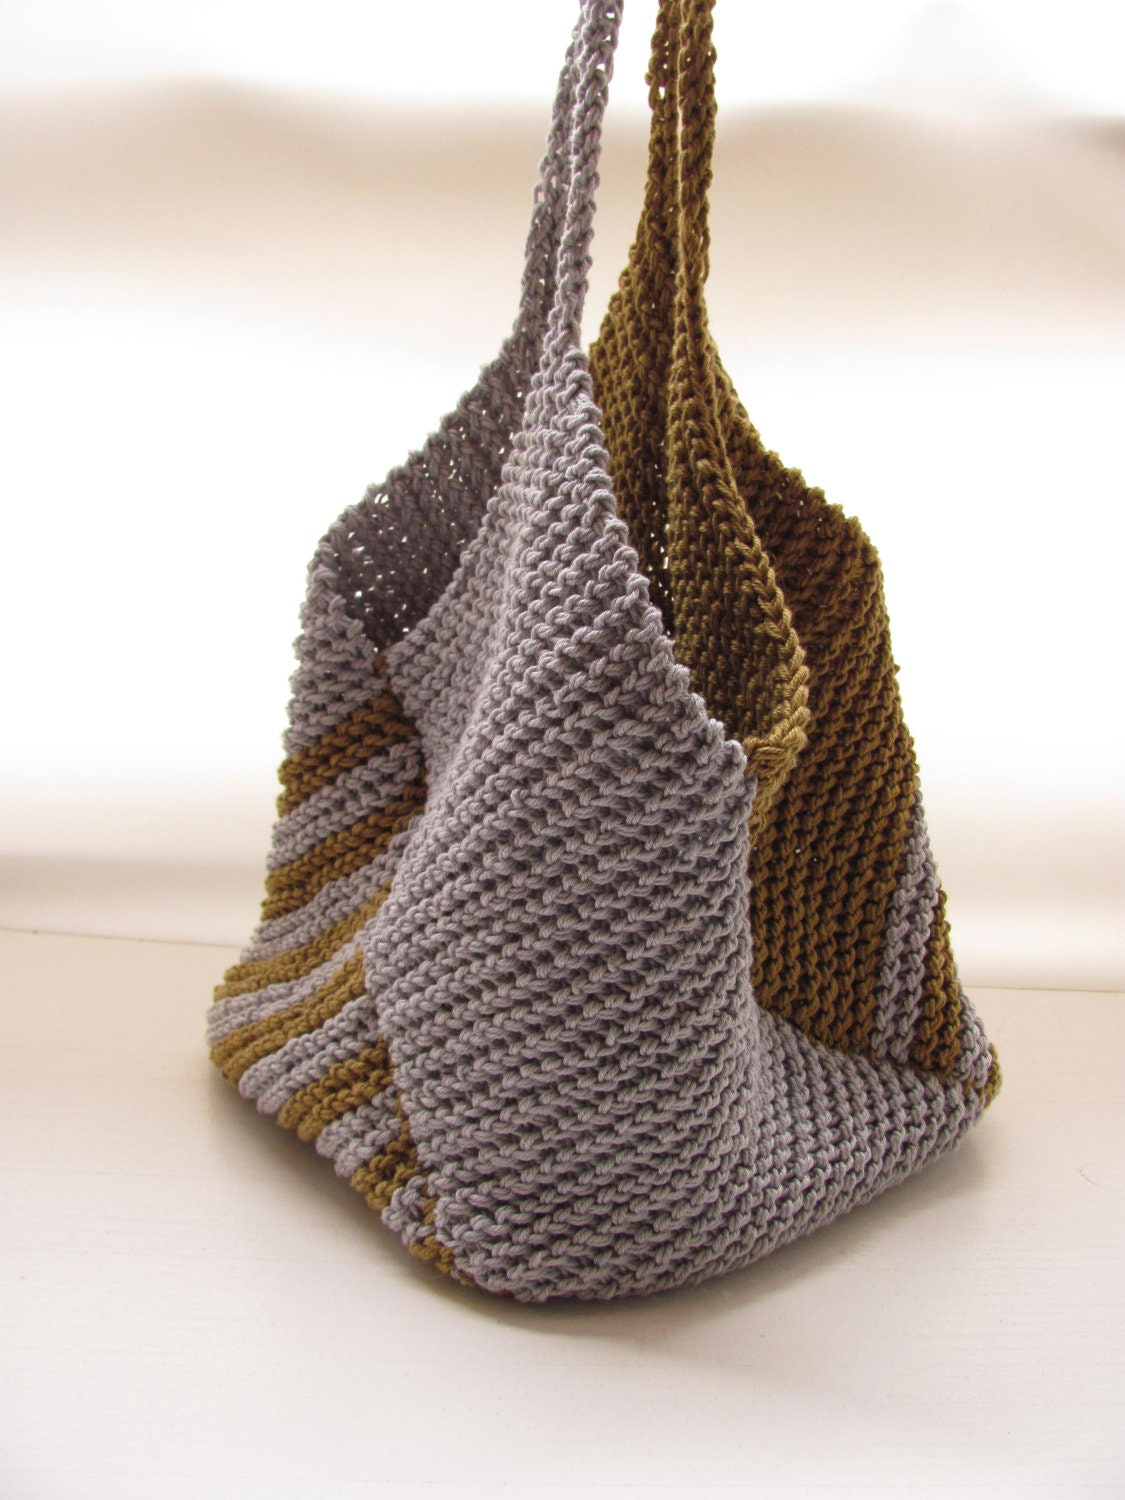 Knitted Bag Patterns For Beginners : Knitted bagGray and green